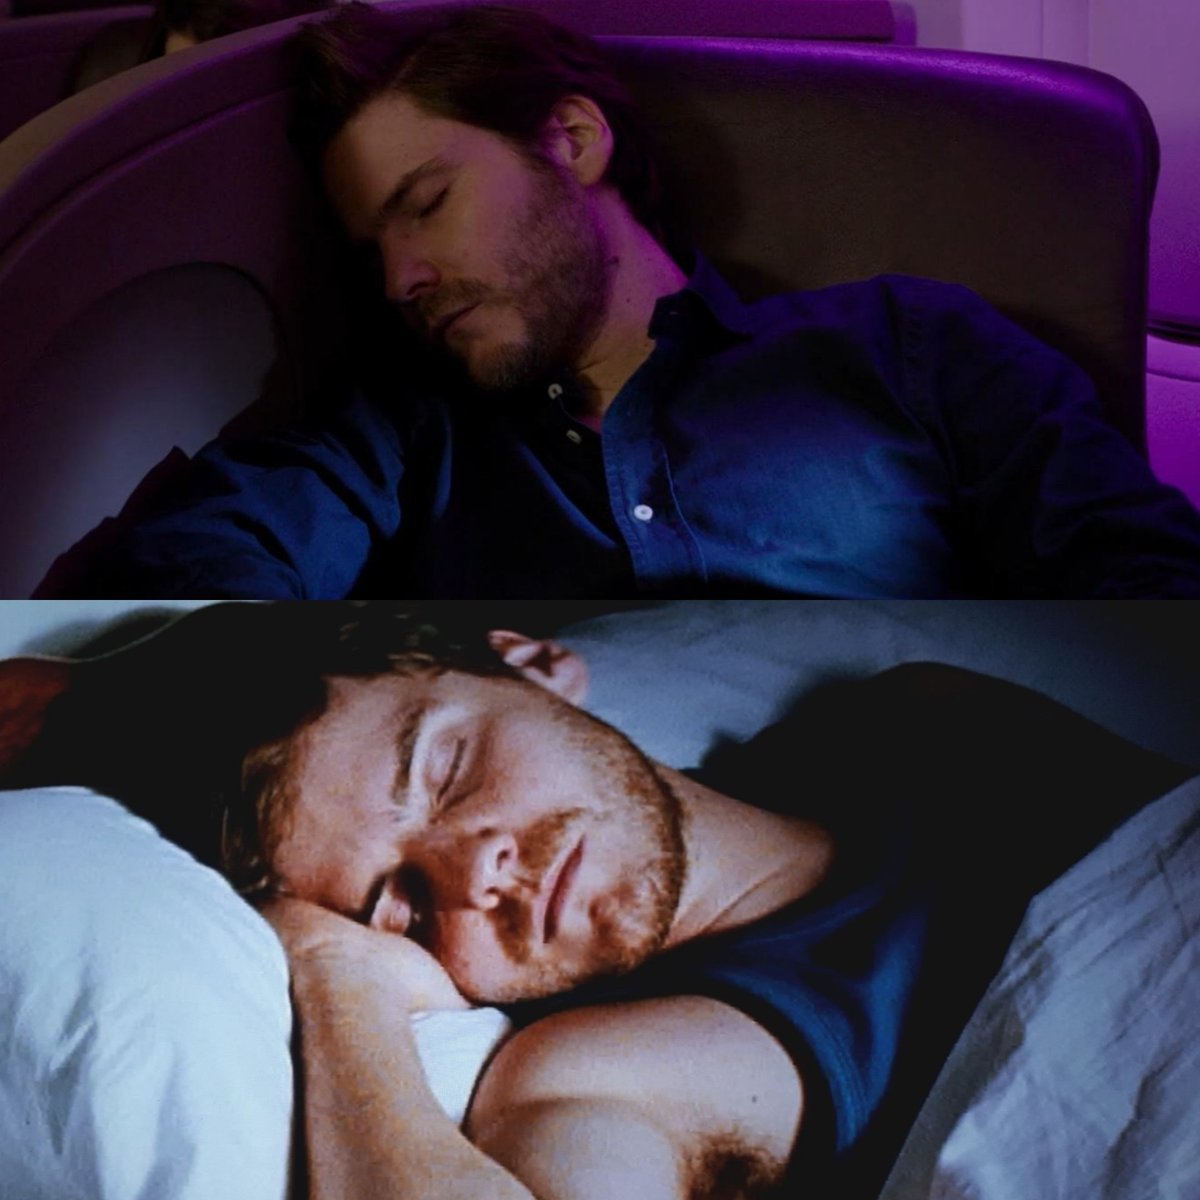 RT @DanielBruhlNews: #WorldSleepDay #DanielBrühl #movies 💤🎬 https://t.co/oZEy65a4Lx